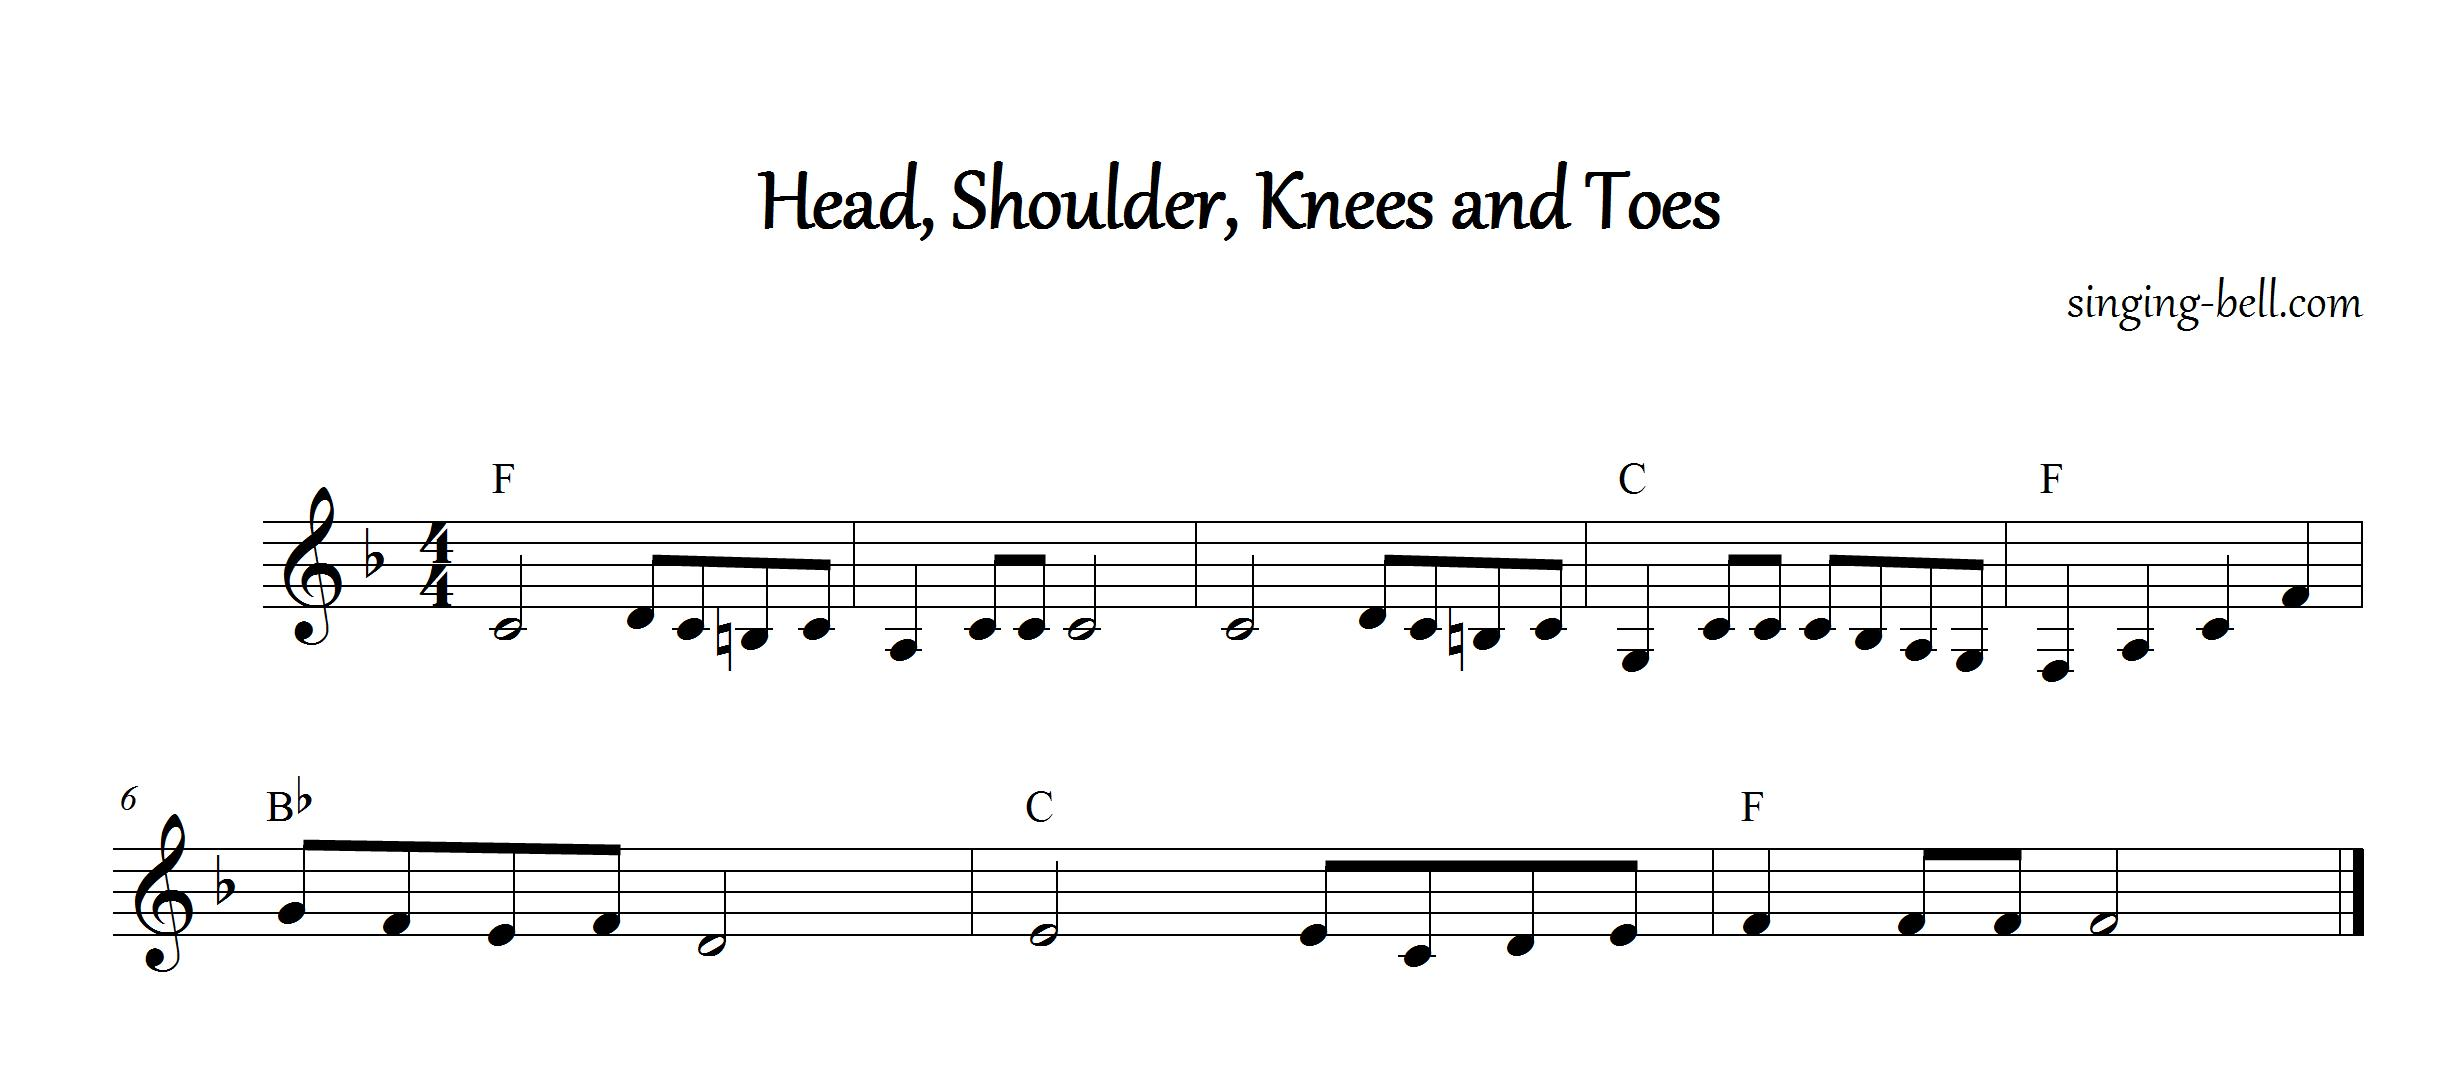 Head,Shoulder,Knees and Toes_F_singing-bell